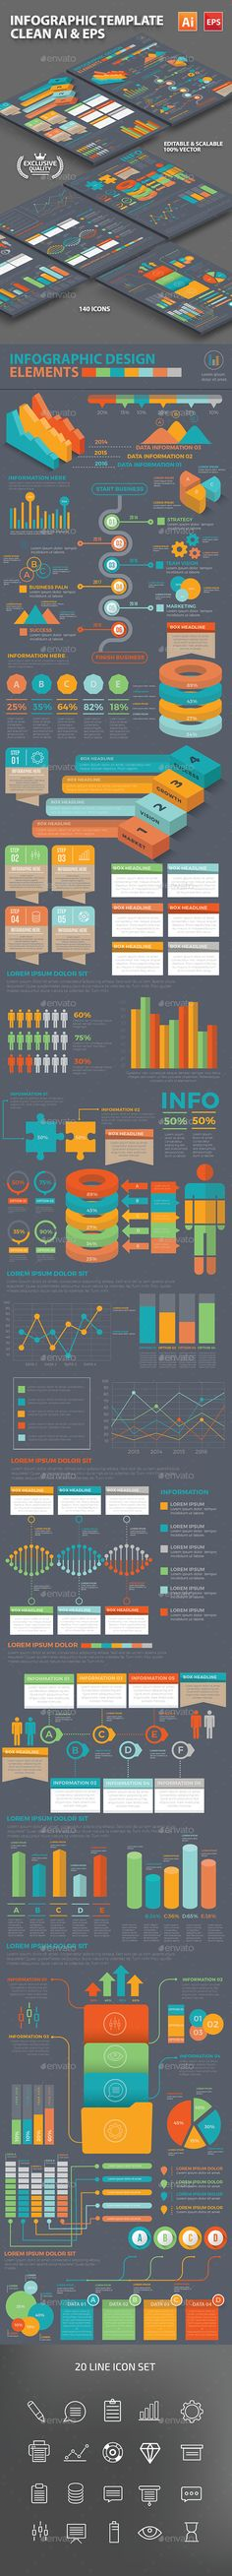 Infographic Template Design - #Infographics Download here: https://graphicriver.net/item/infographic-template-design/18248866?ref=alena994